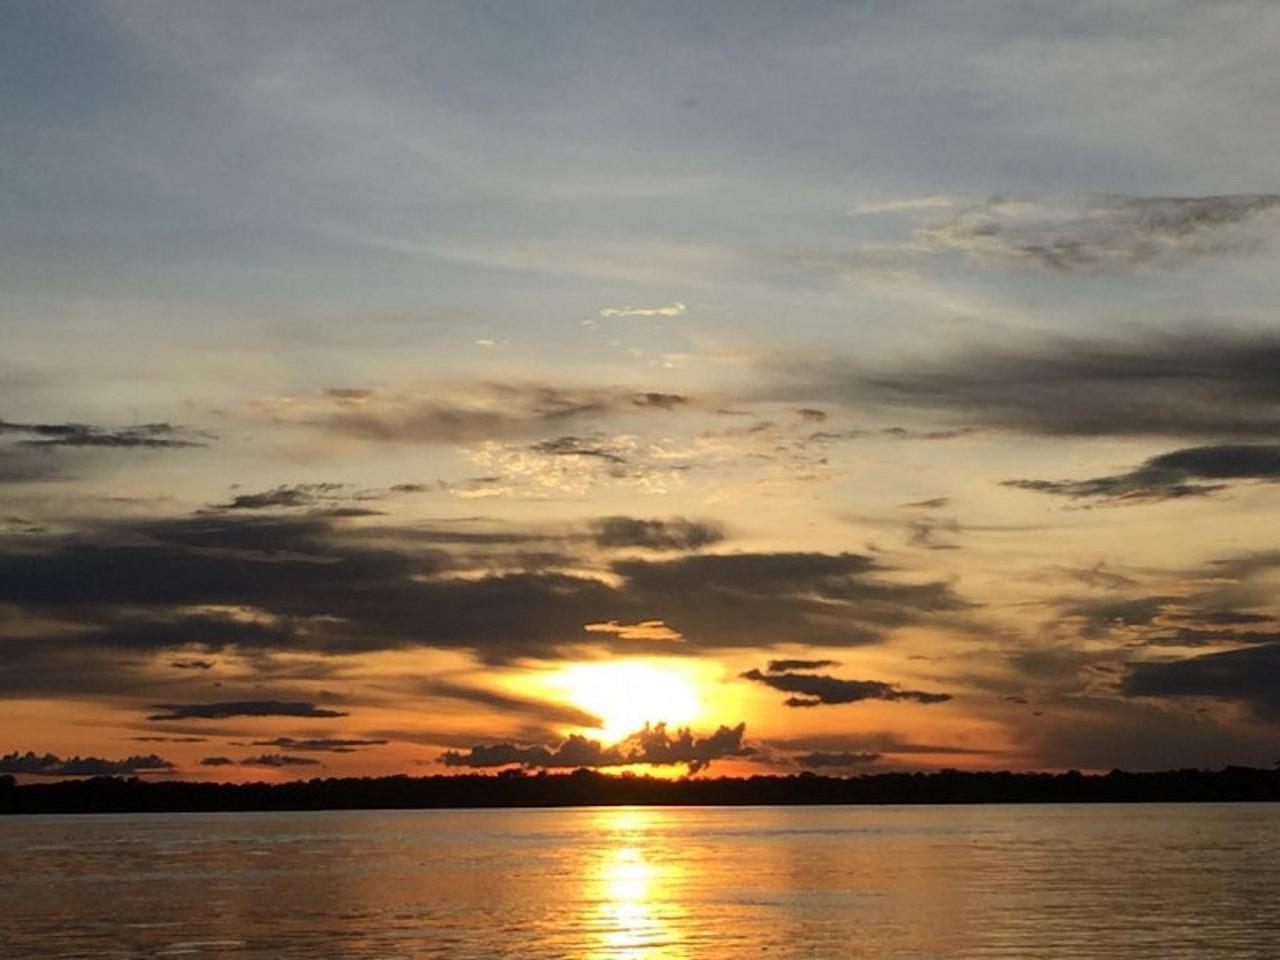 Sunset, Amazon River Cruise, Amazon Basin, Peru, Naturalist Journeys